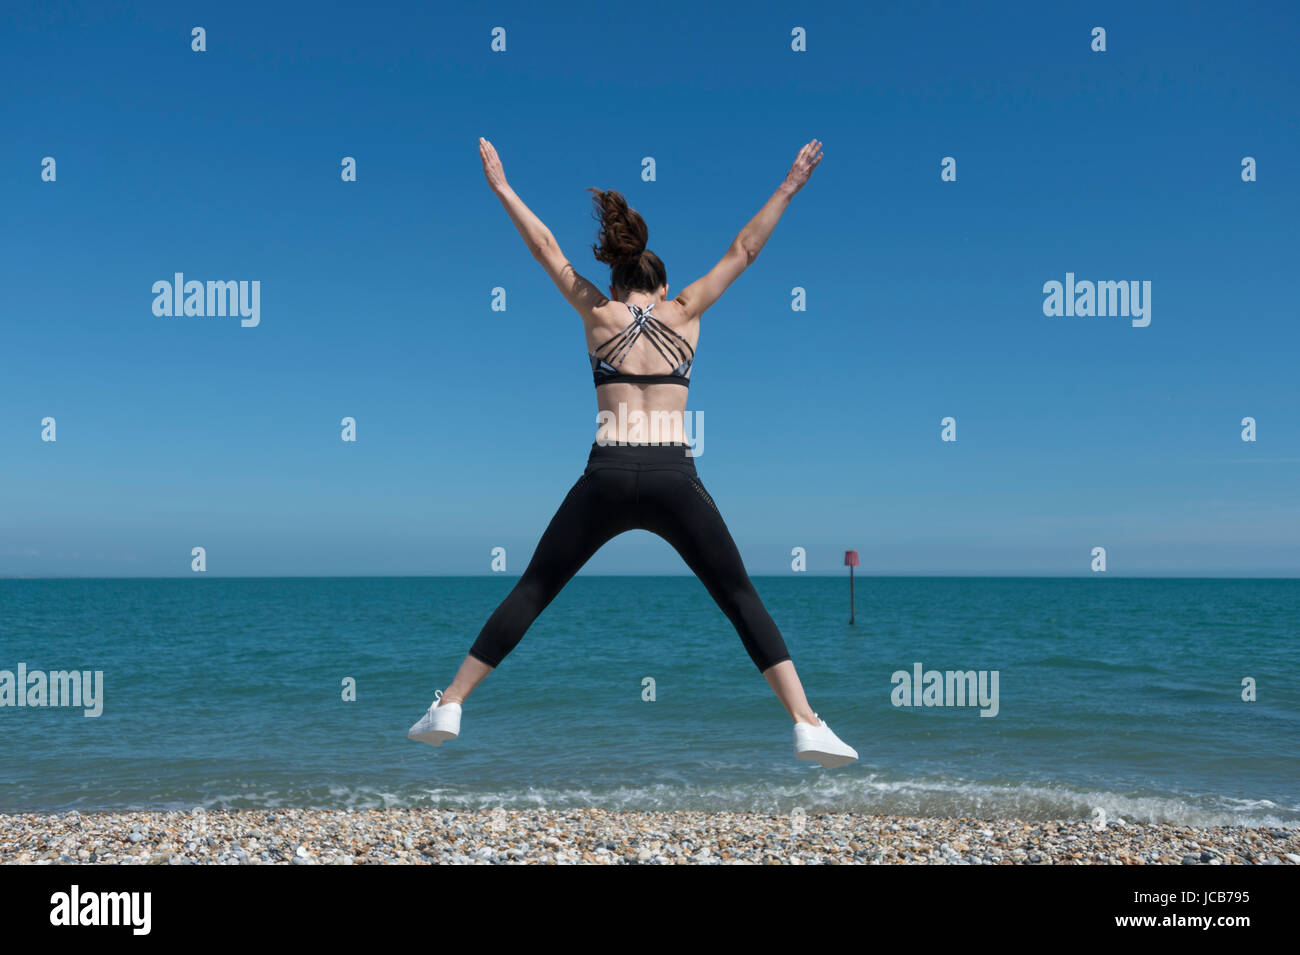 woman doing a star jump on the beach - Stock Image